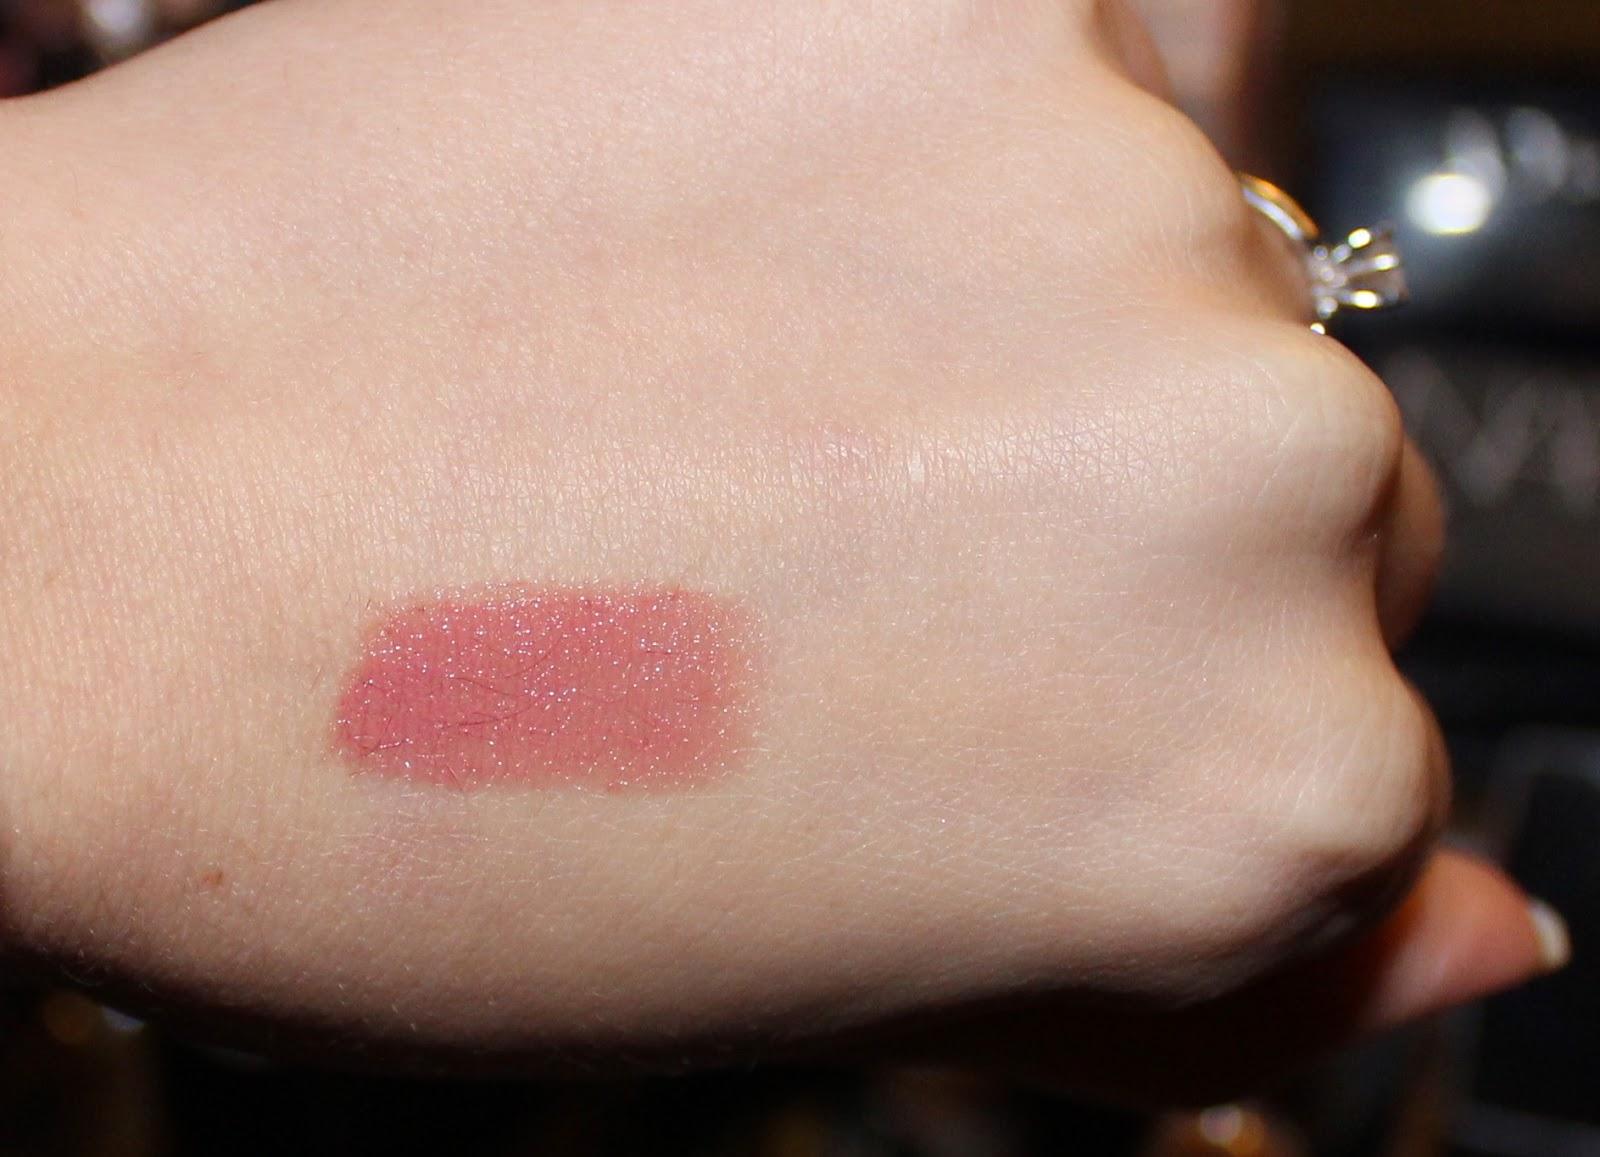 Burberry Lip Cover in Tulip Pink No. 27 Swatch